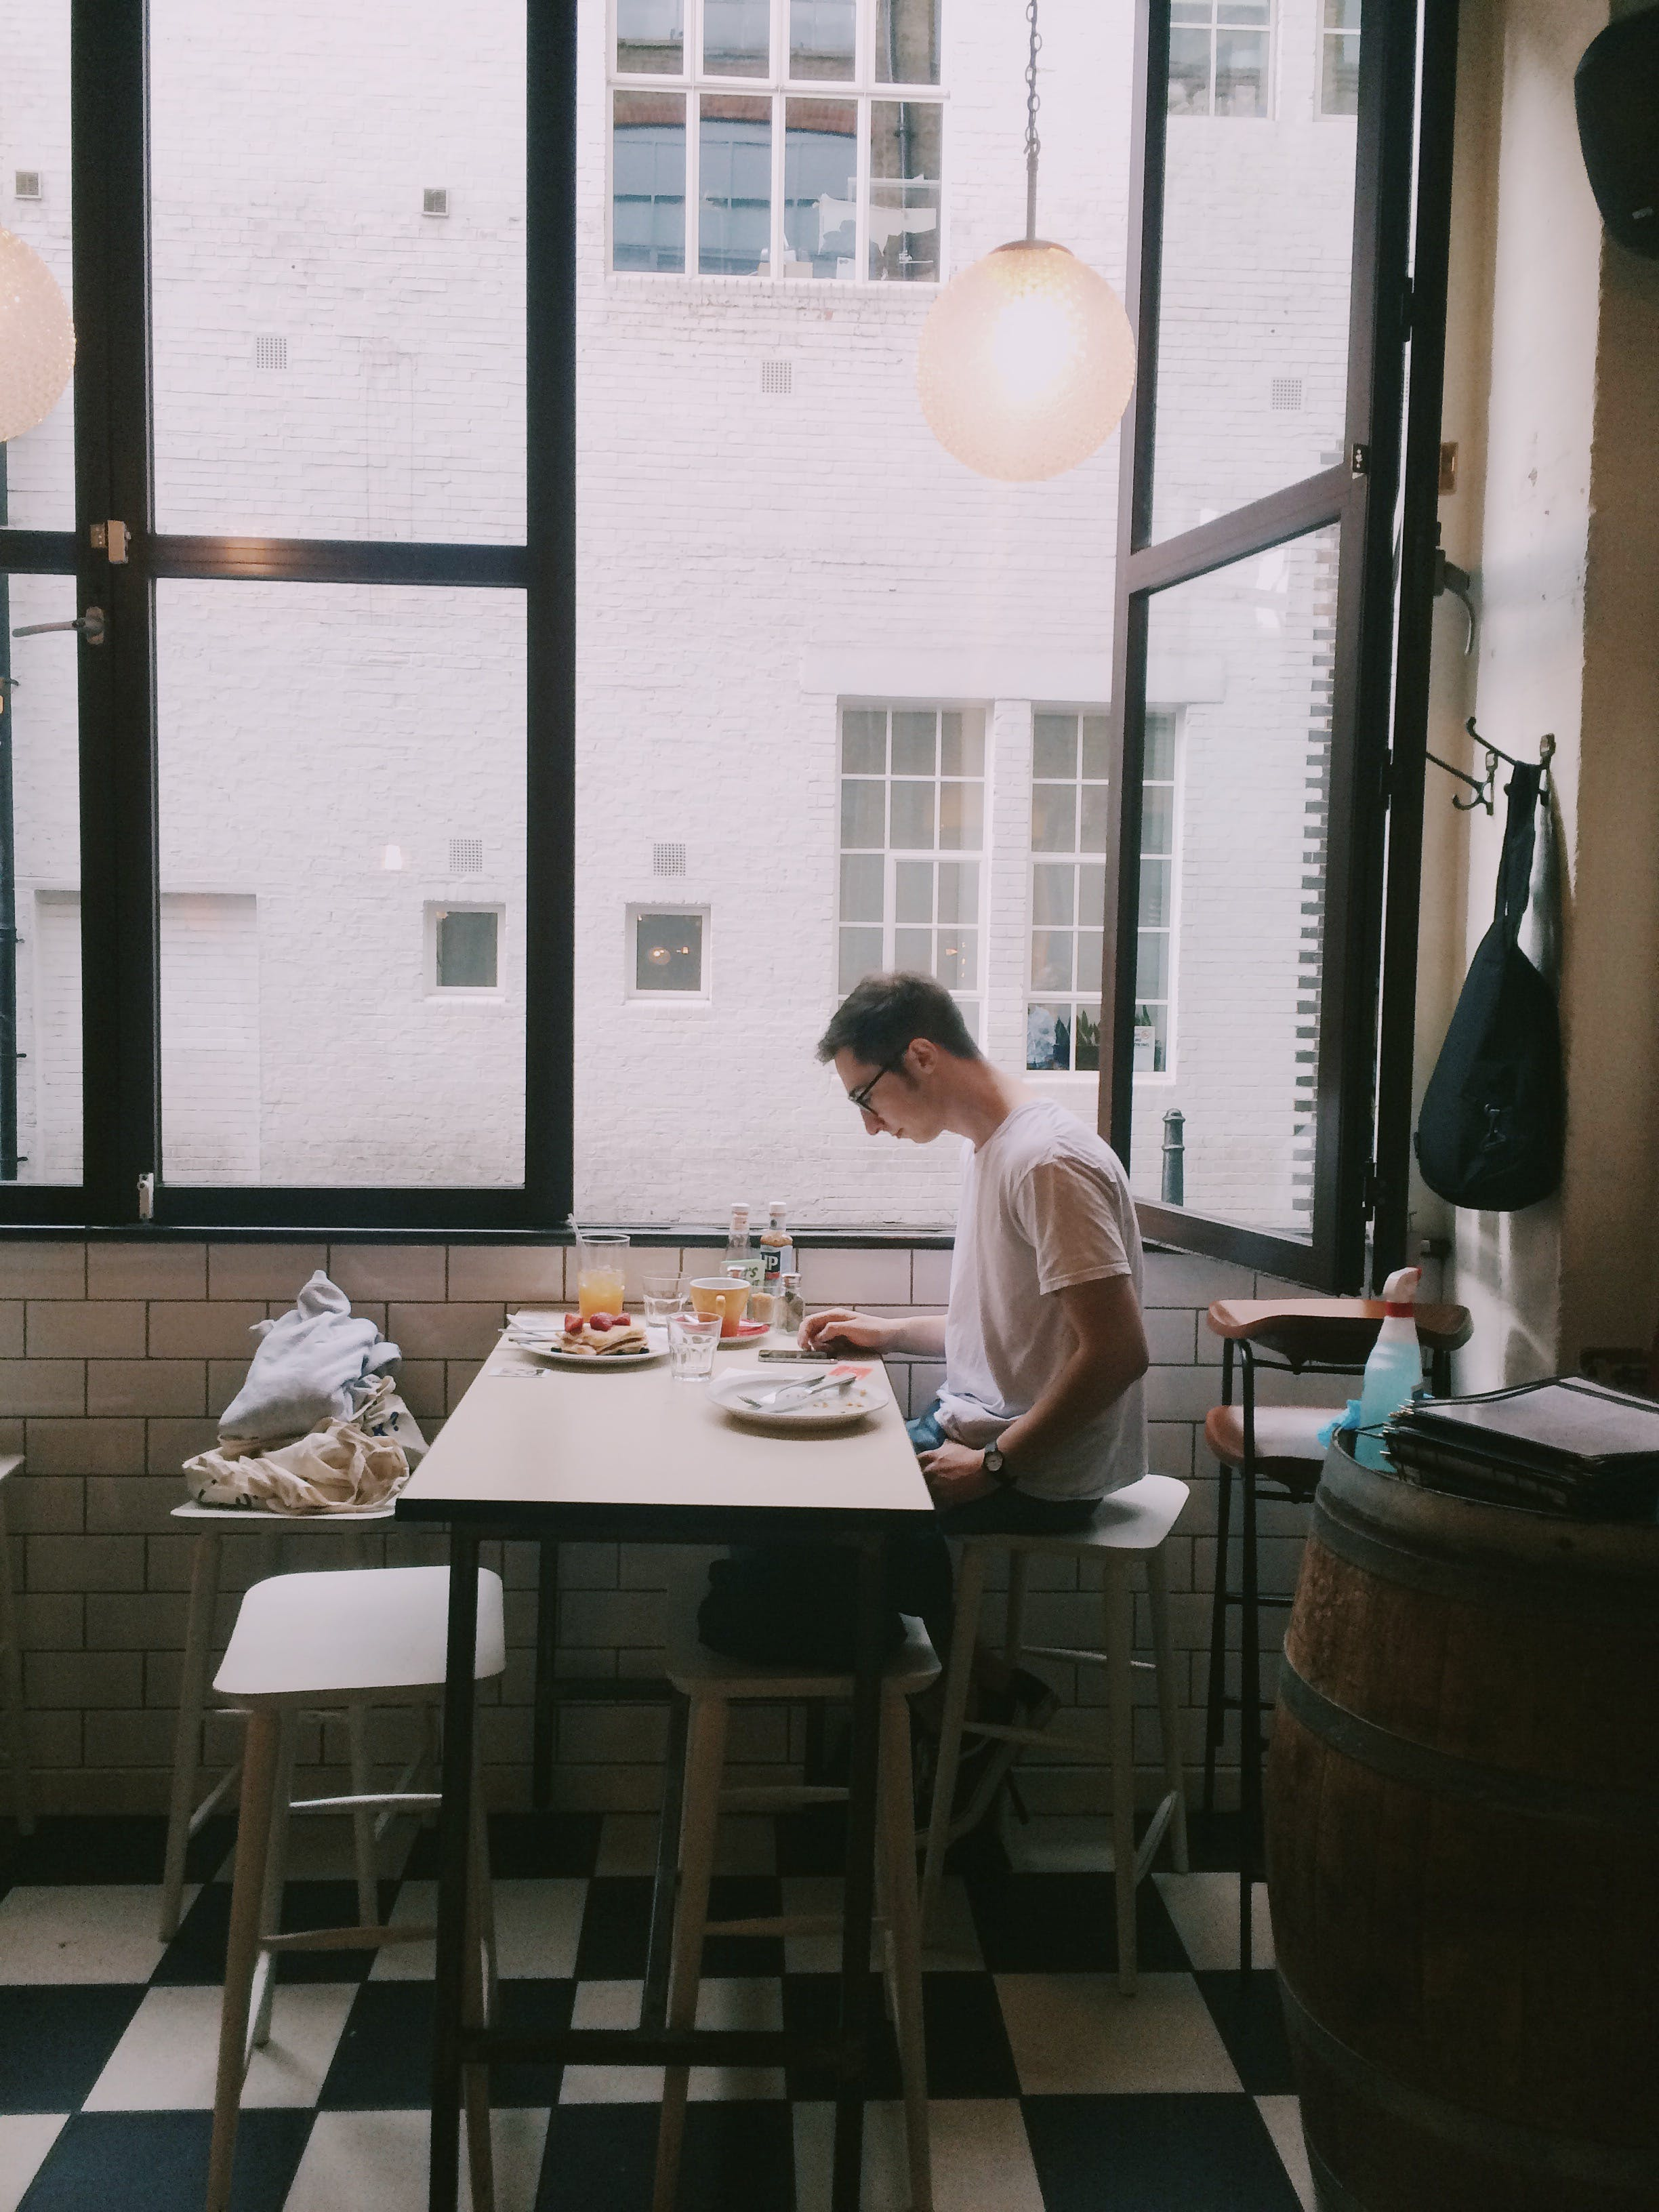 Man Sitting in Front of Table Holding Smartphone Beside Window